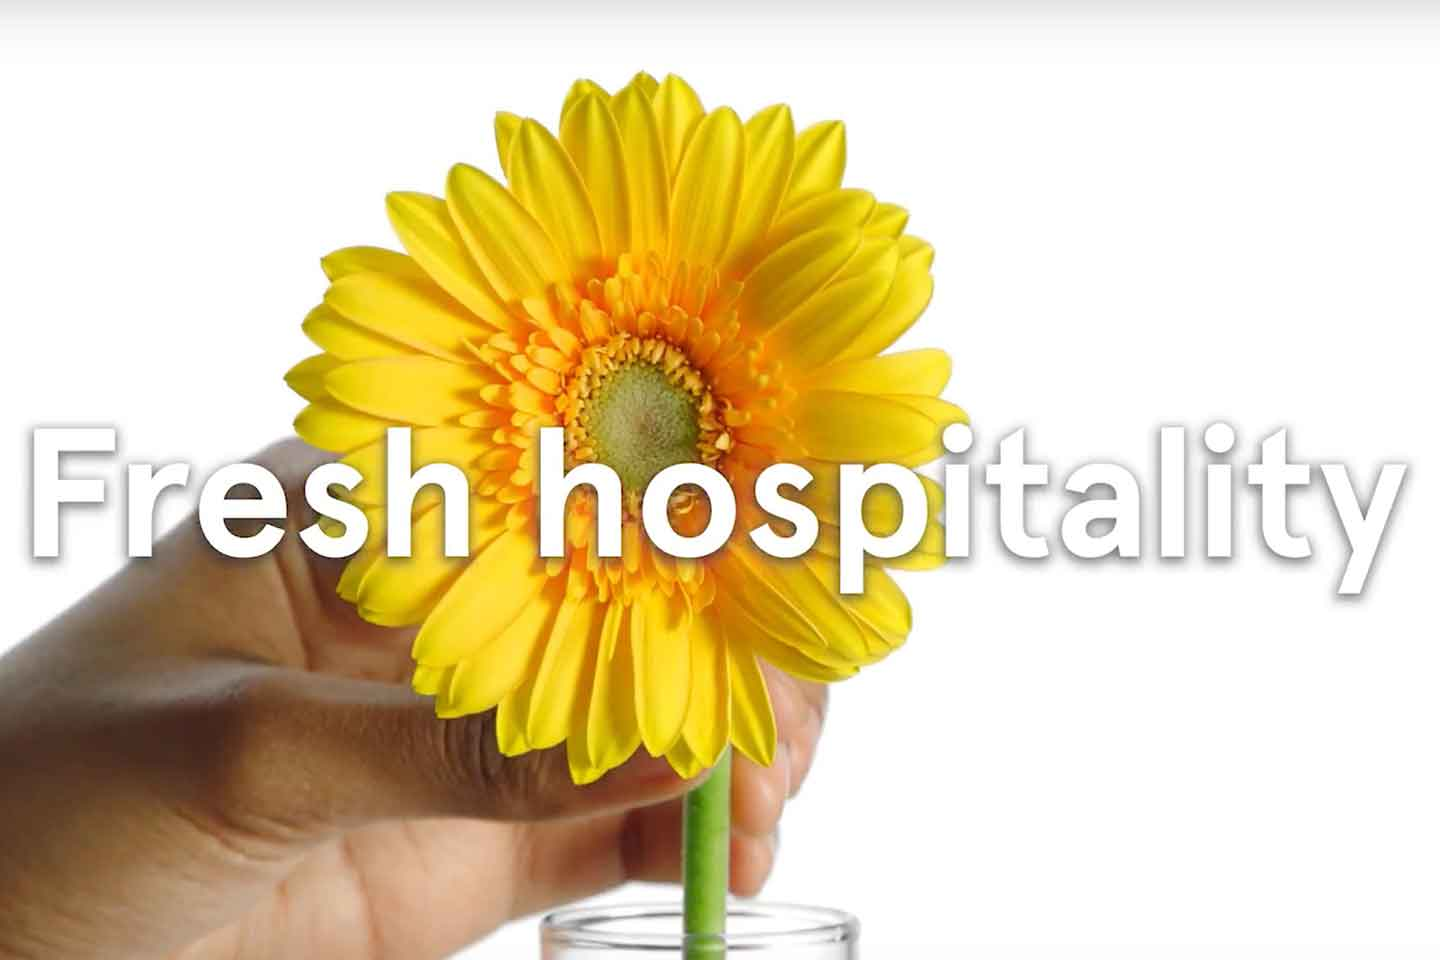 Fresh hospitality - image of a yellow flower